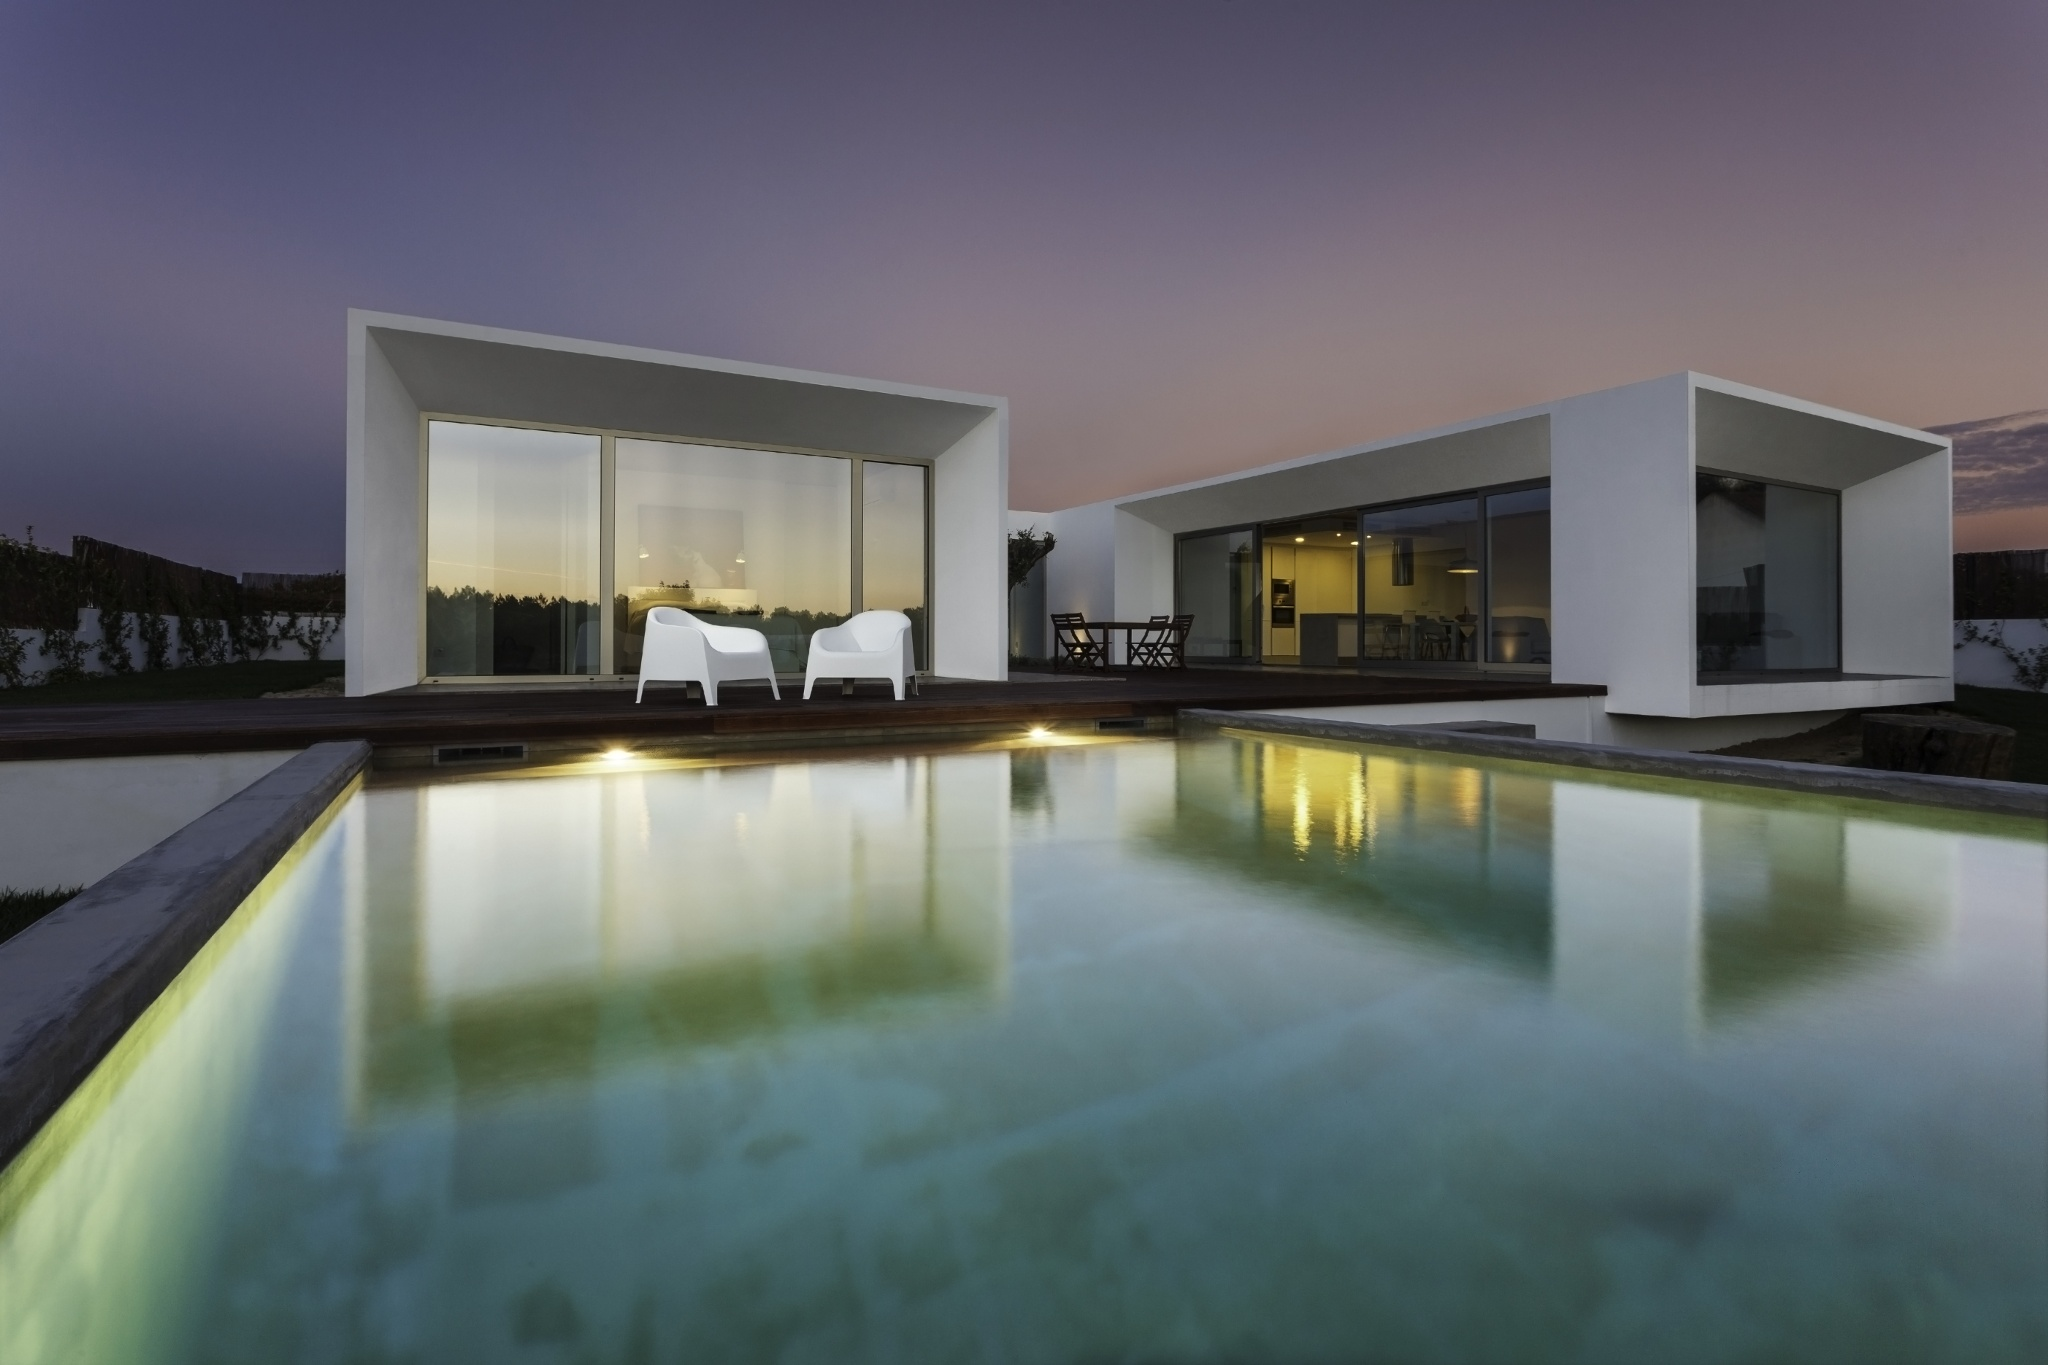 Modern House With Garden Swimming Pool And Wooden Deck 500px